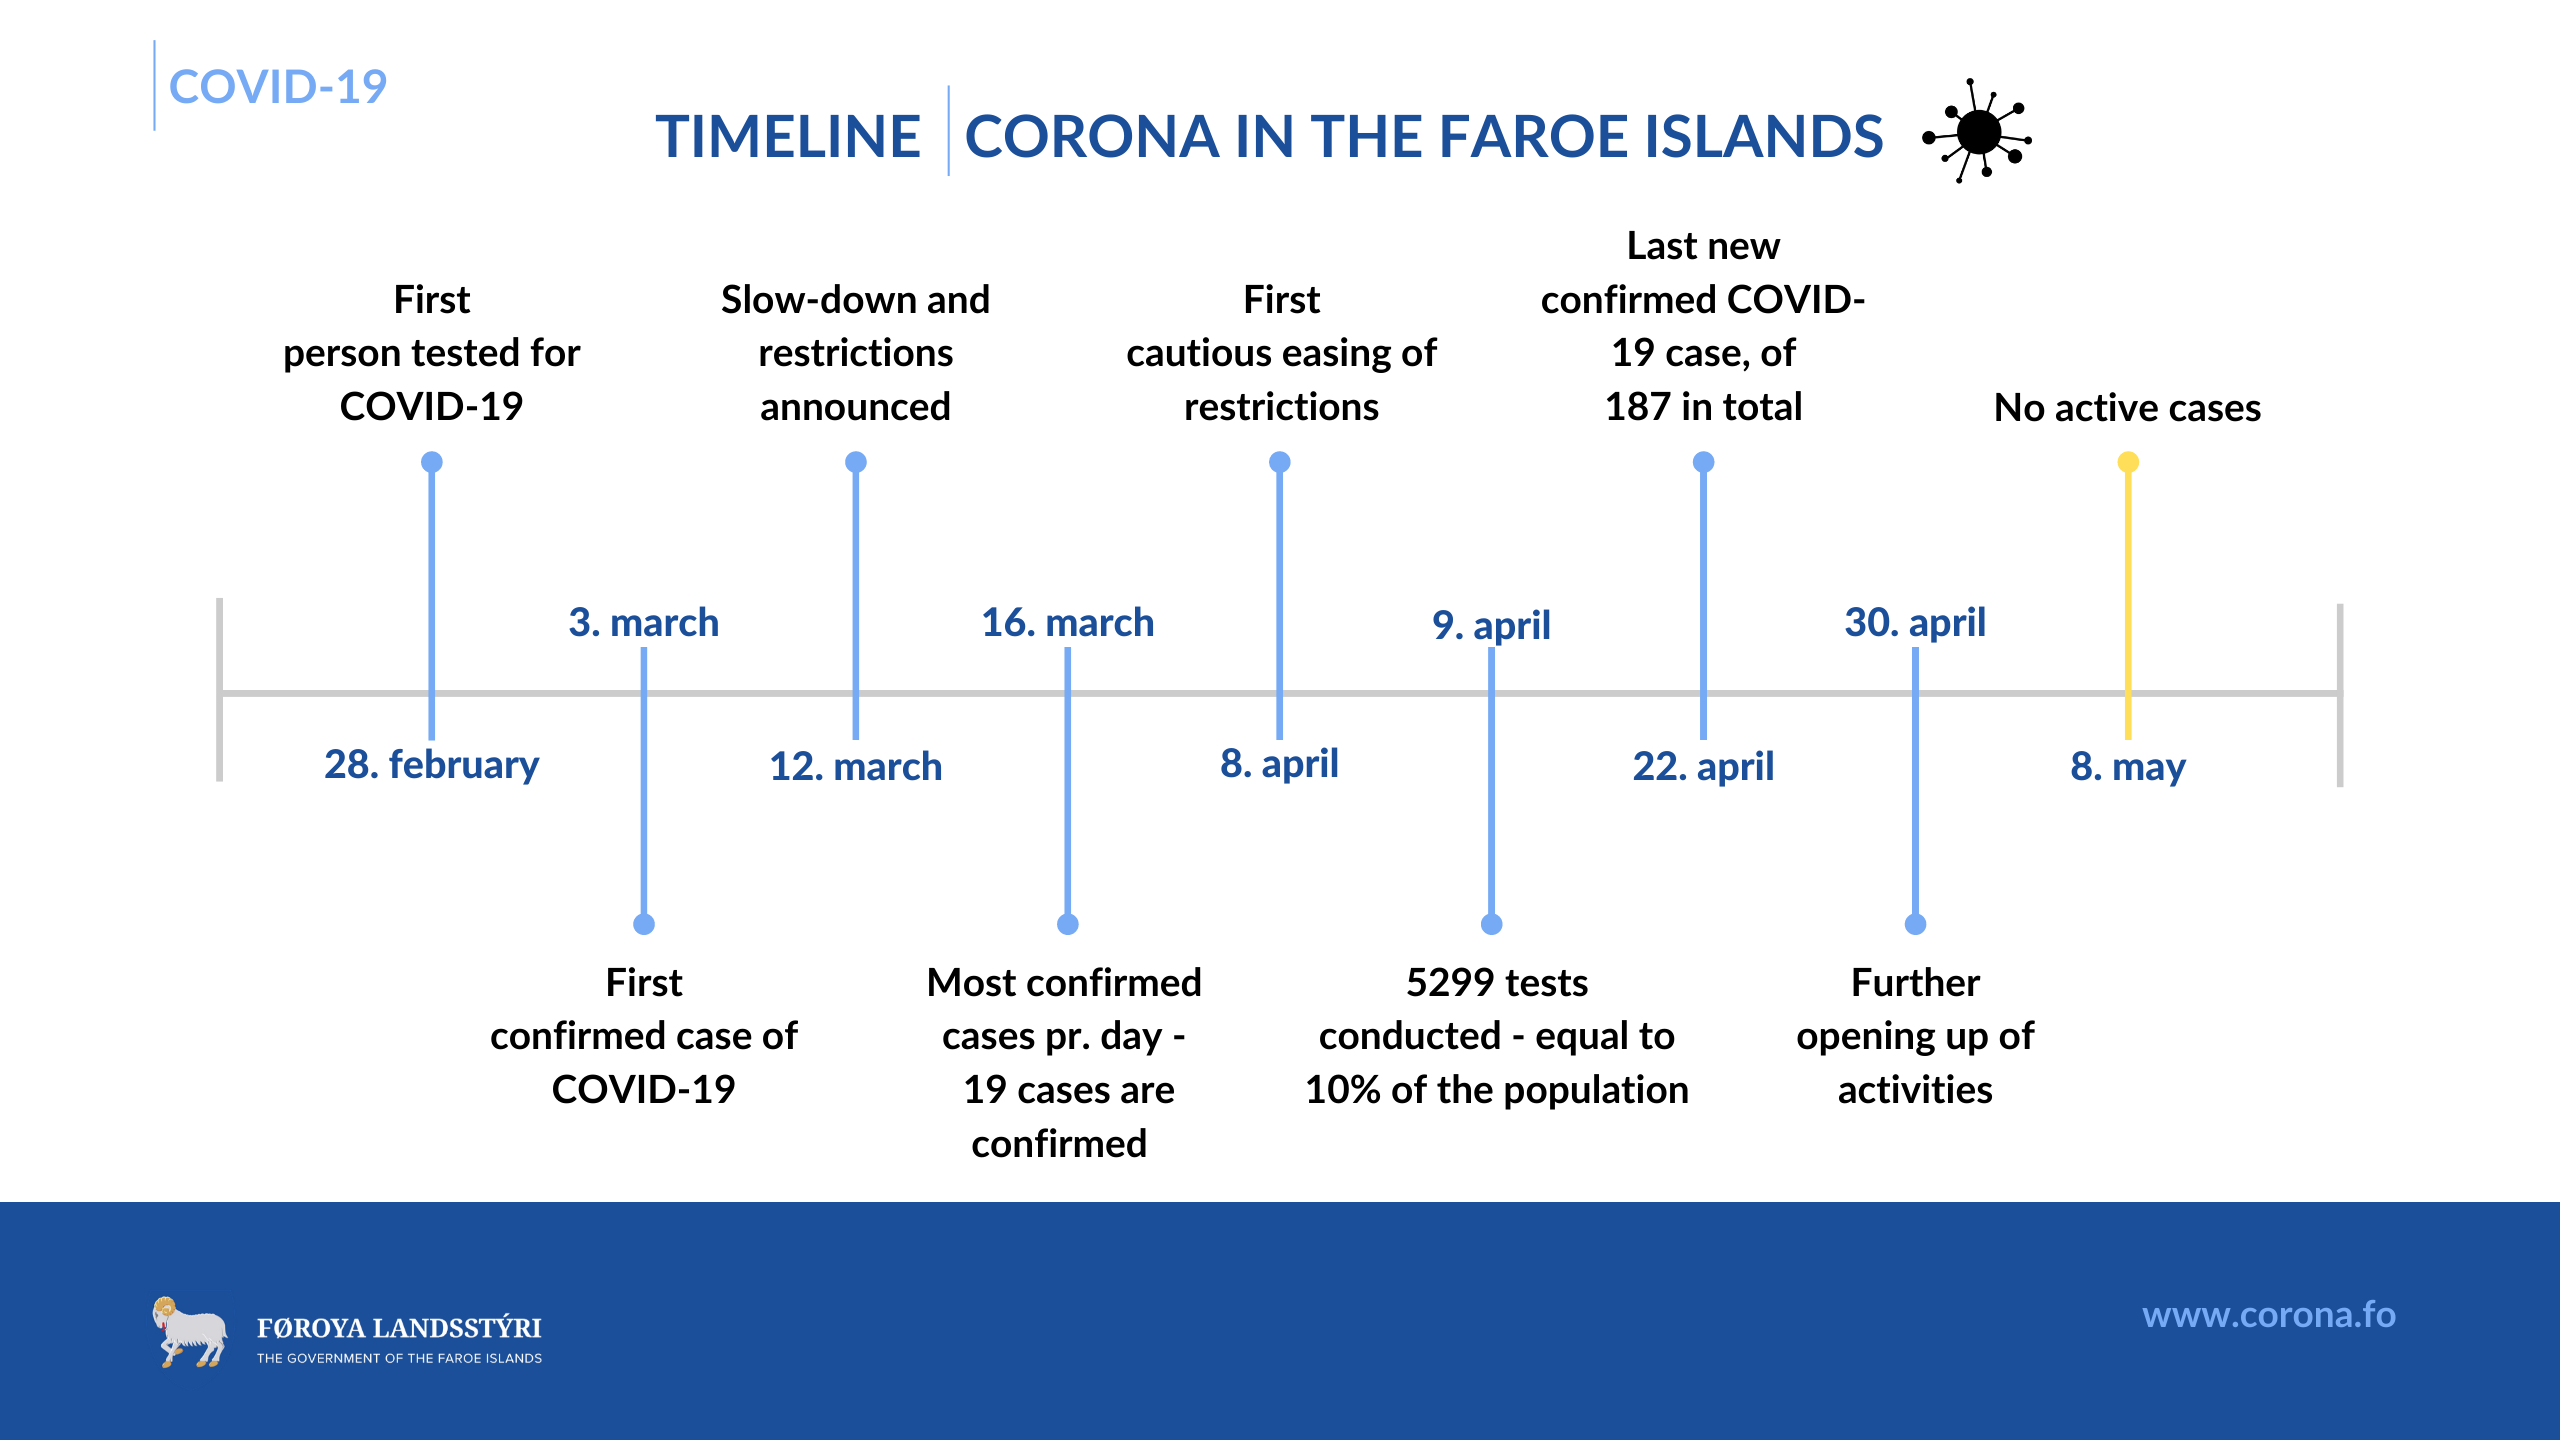 How the Faroe Islands eliminated COVID-19 (timeline)